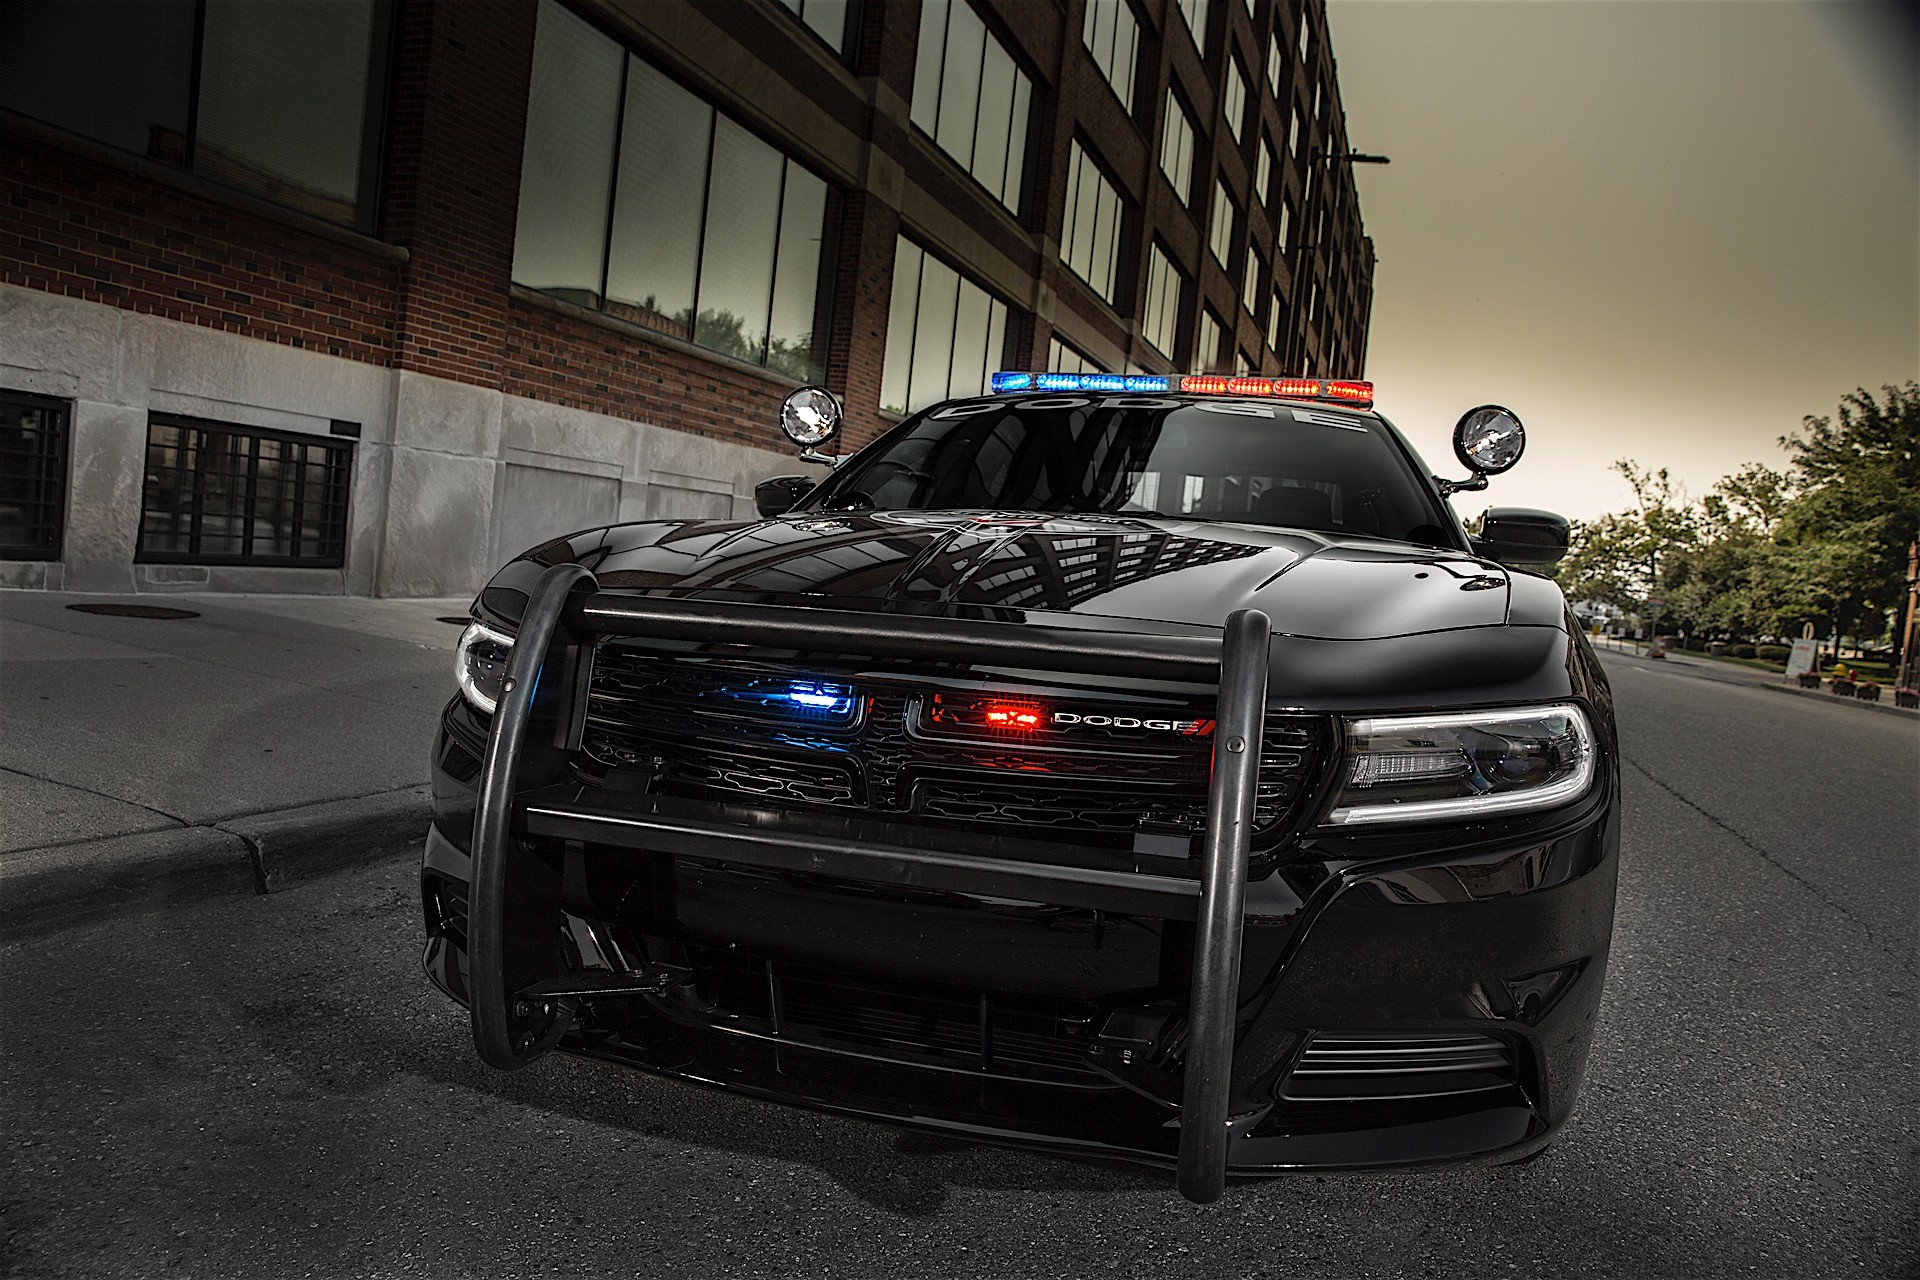 Dodge Charger Police Car >> California Highway Patrol Introduces Fleet of Dodge ...